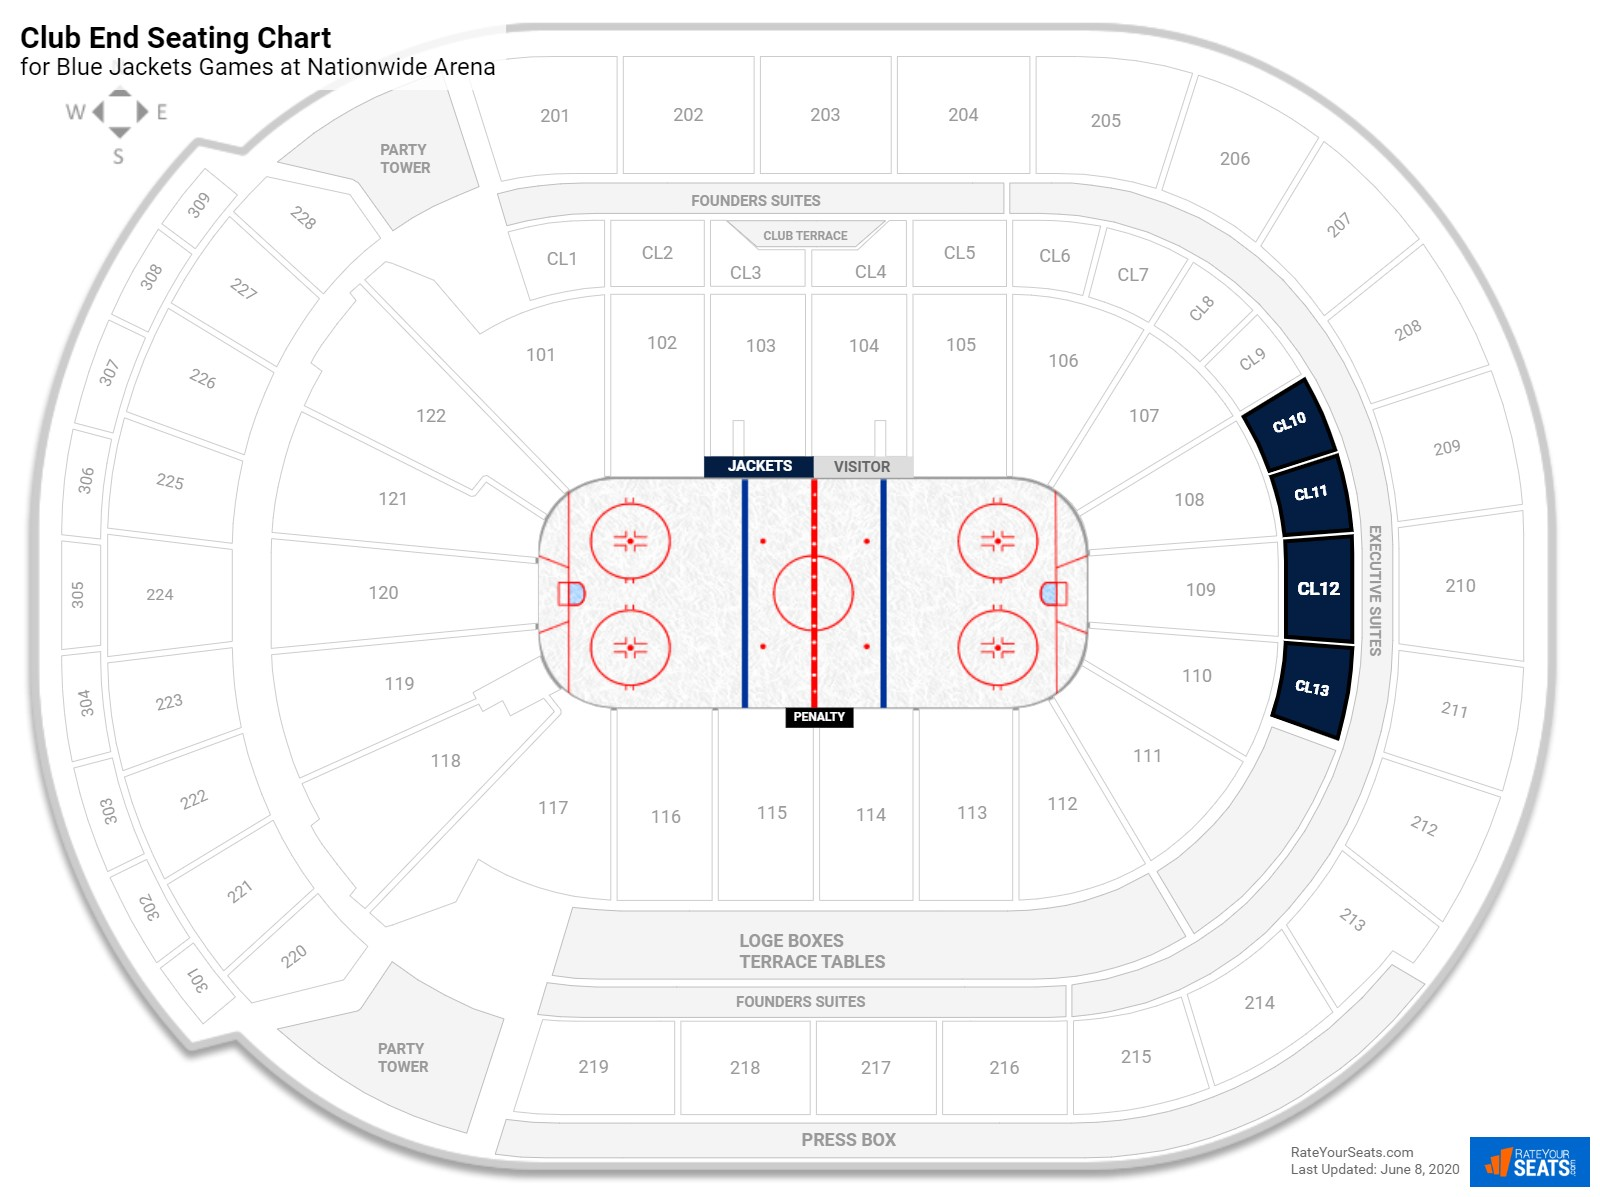 Nationwide Arena Club Level Behind the Net seating chart